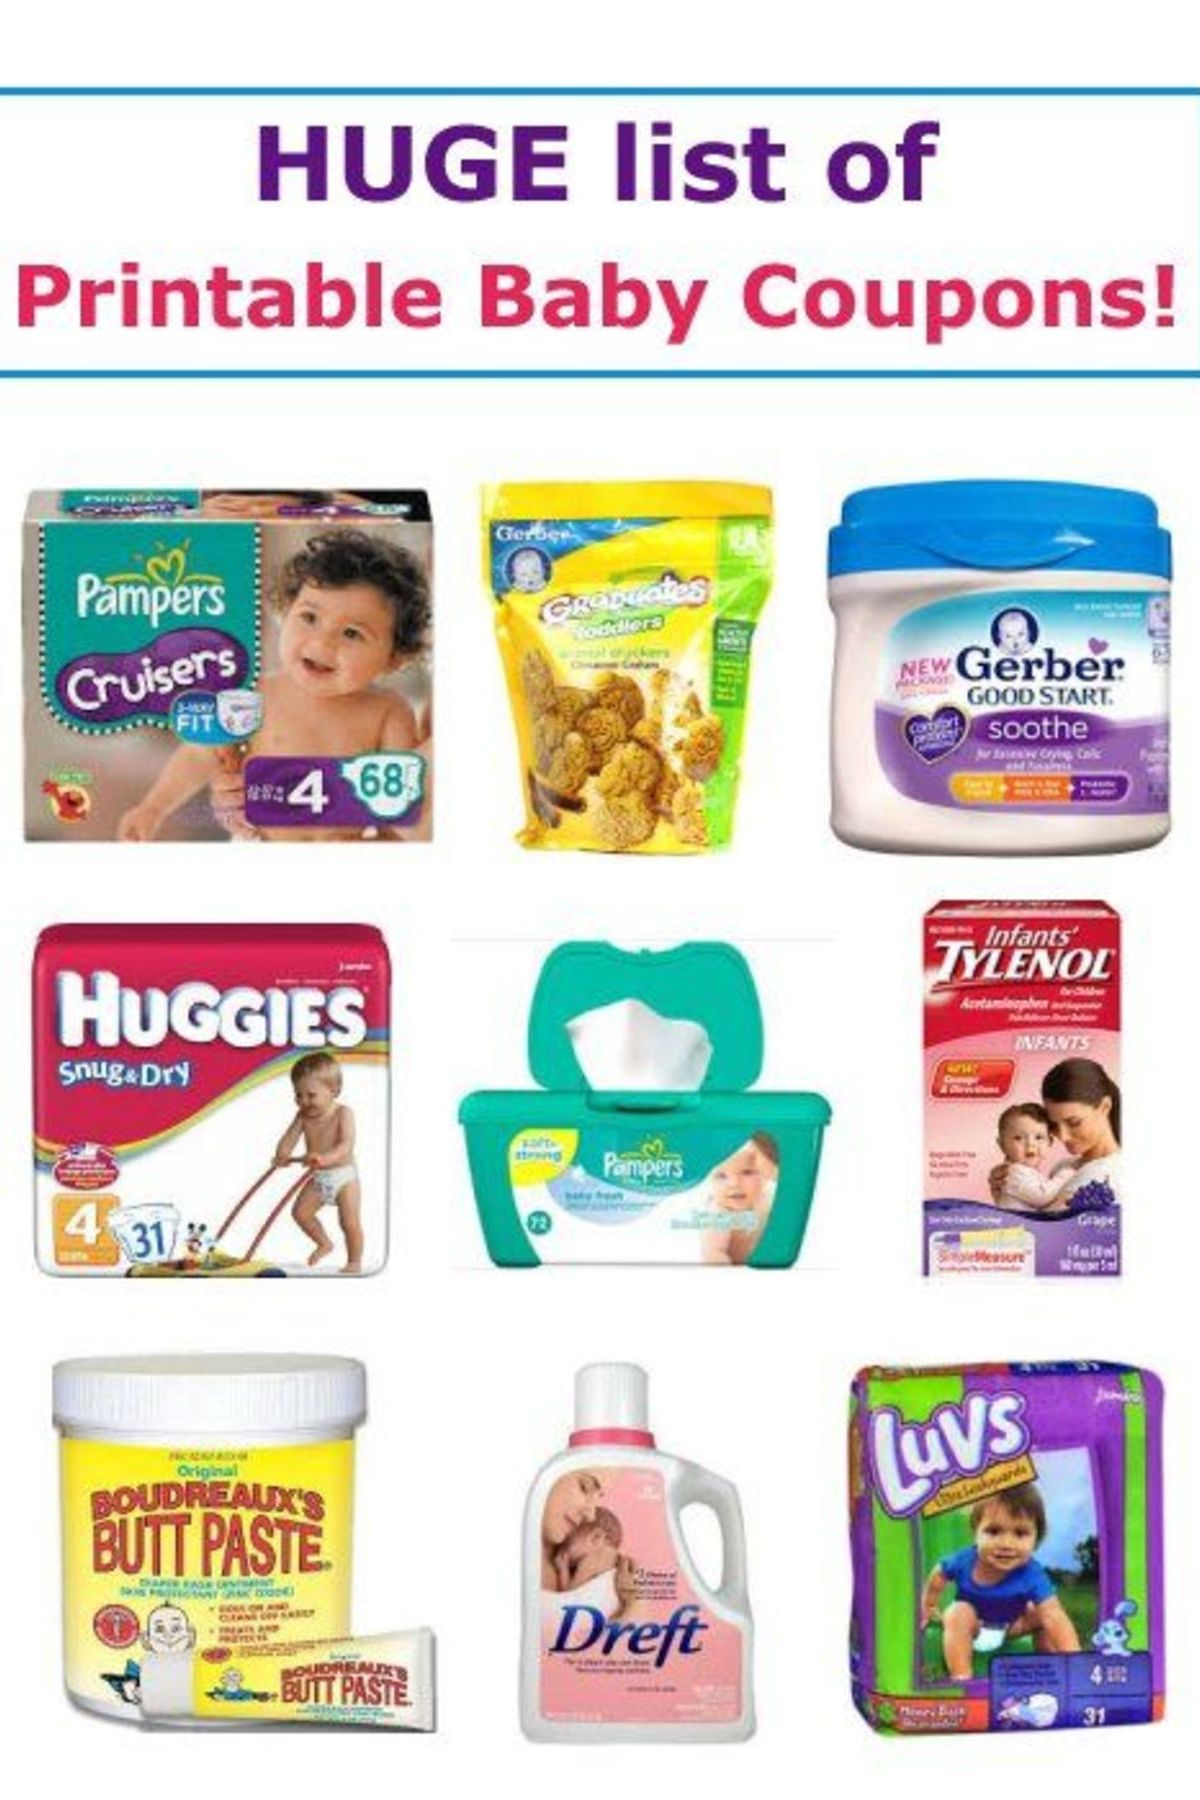 17 Printable Baby Coupons Baby Coupons Baby Formula Coupons Diaper Coupon